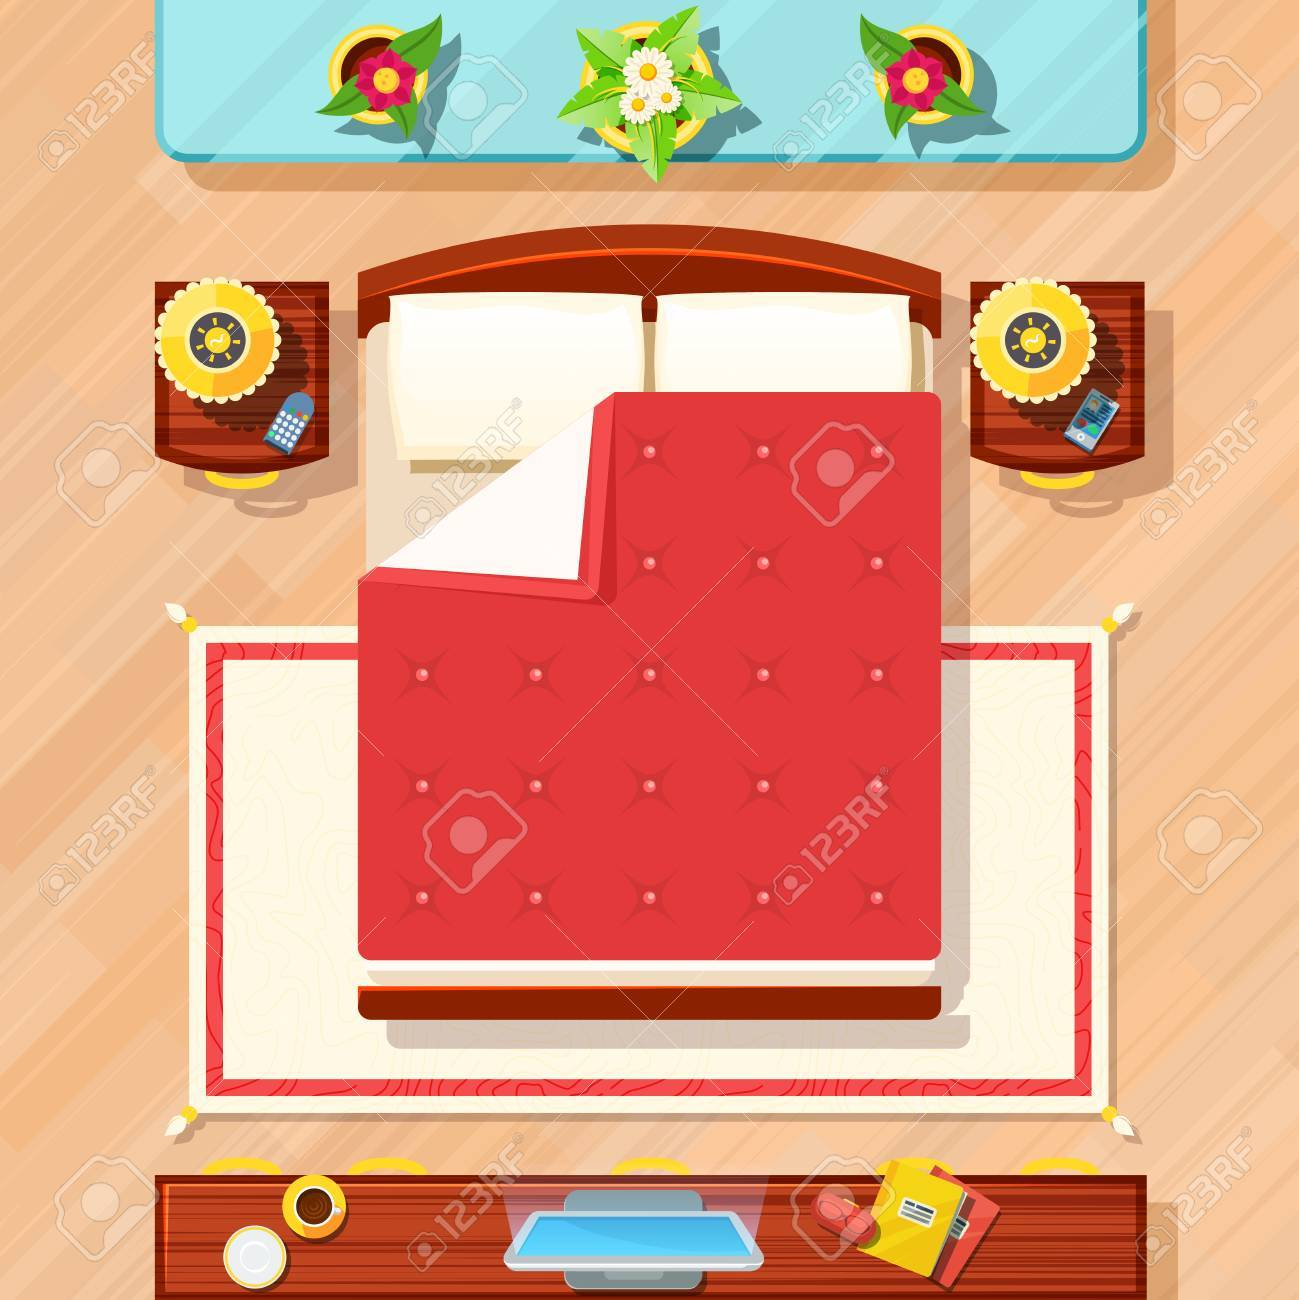 Bedroom Top View Design With Bed TV Lamps And Flowers Flat Vector  Illustration Stock Vector